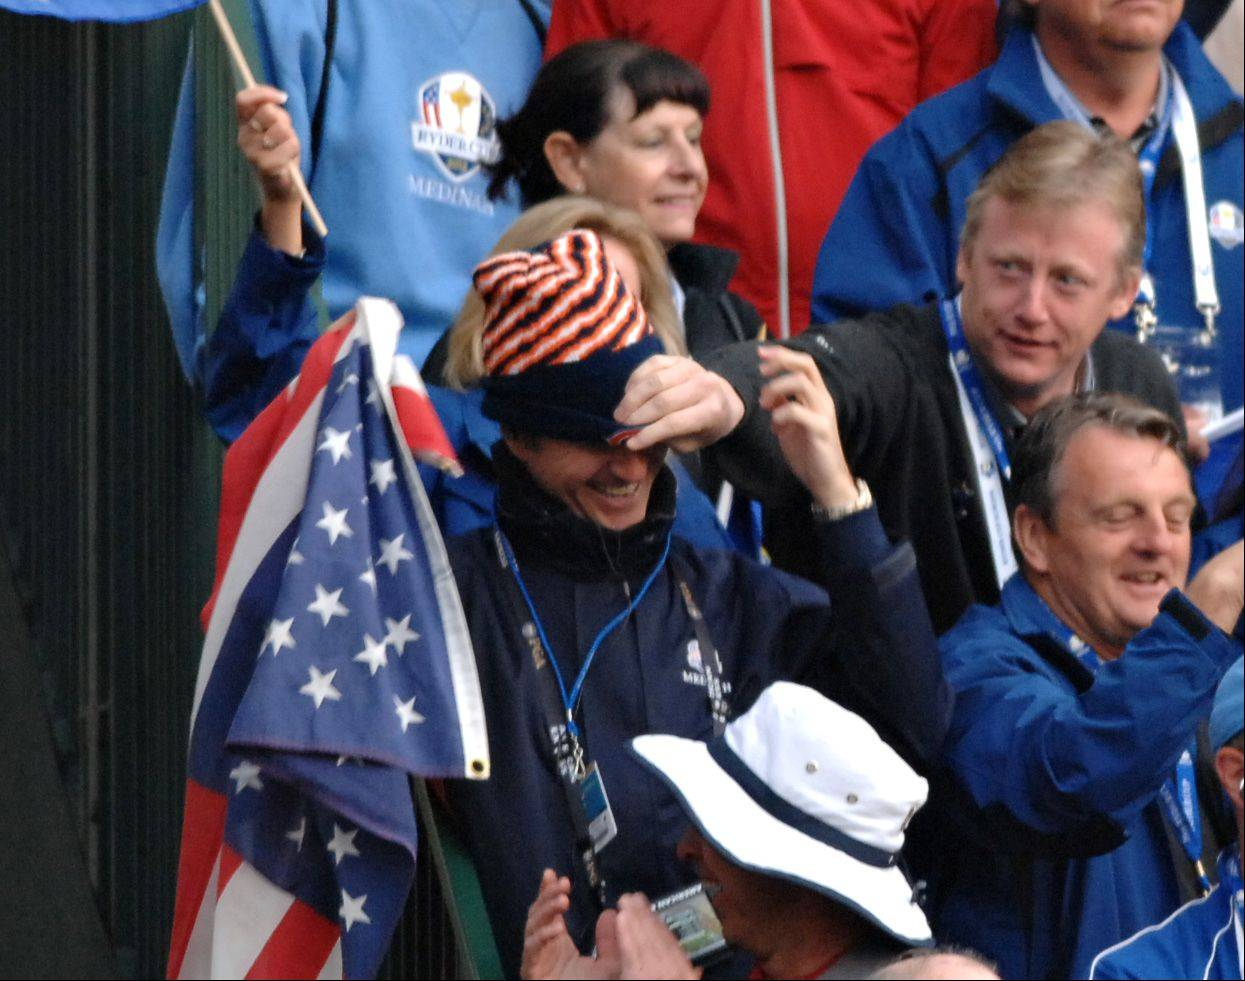 A Team Europe fan pulls a hat down over the head of a Team USA fan as the rivalry gets spirited on the first tee Friday morning. The American fan was trying to get a chorus of God Bless America going, but he was outnumbered by the other fans.